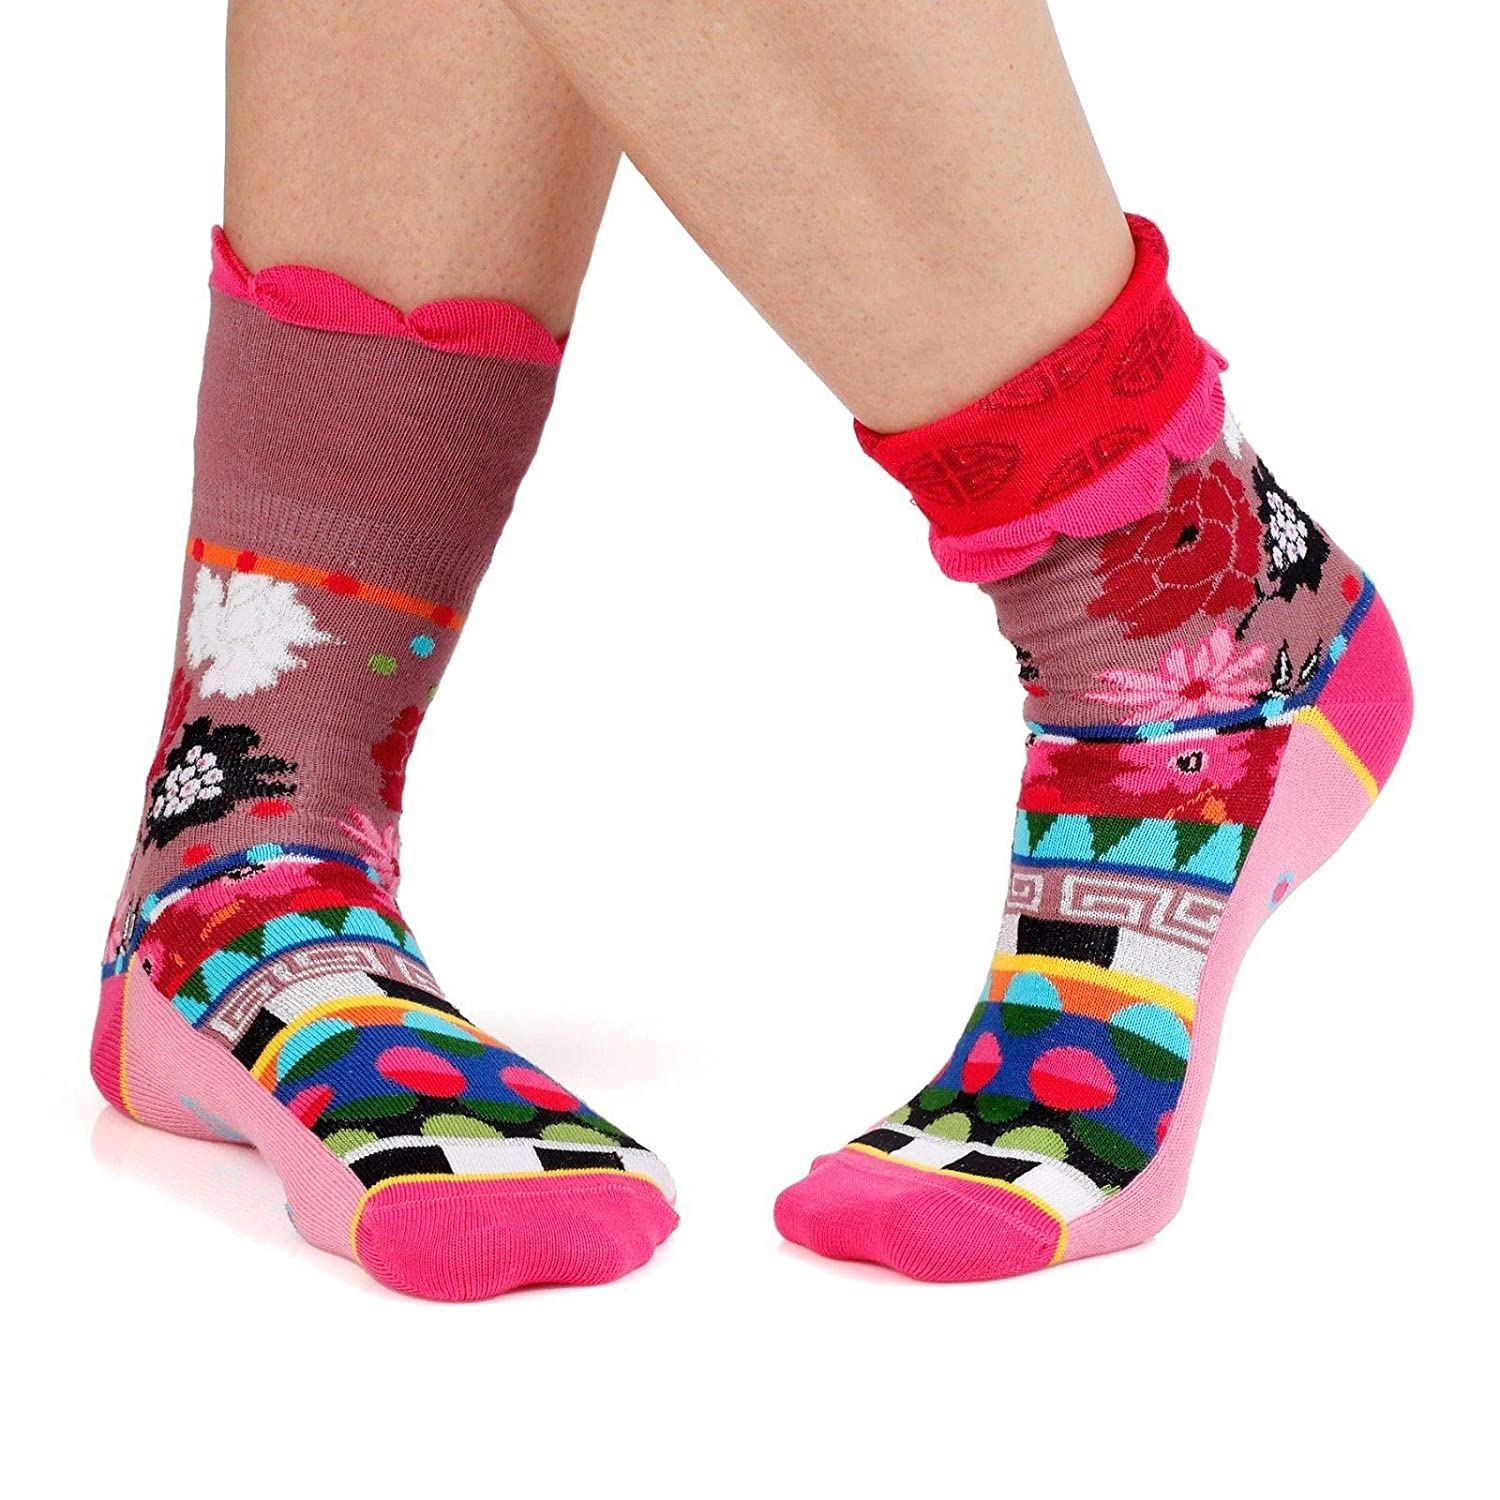 pink, Pink, Multicoloured Dub & Drino France Women's Cuffed Crew Socks colorful Geometric and Floral Patterns US 5 8.5